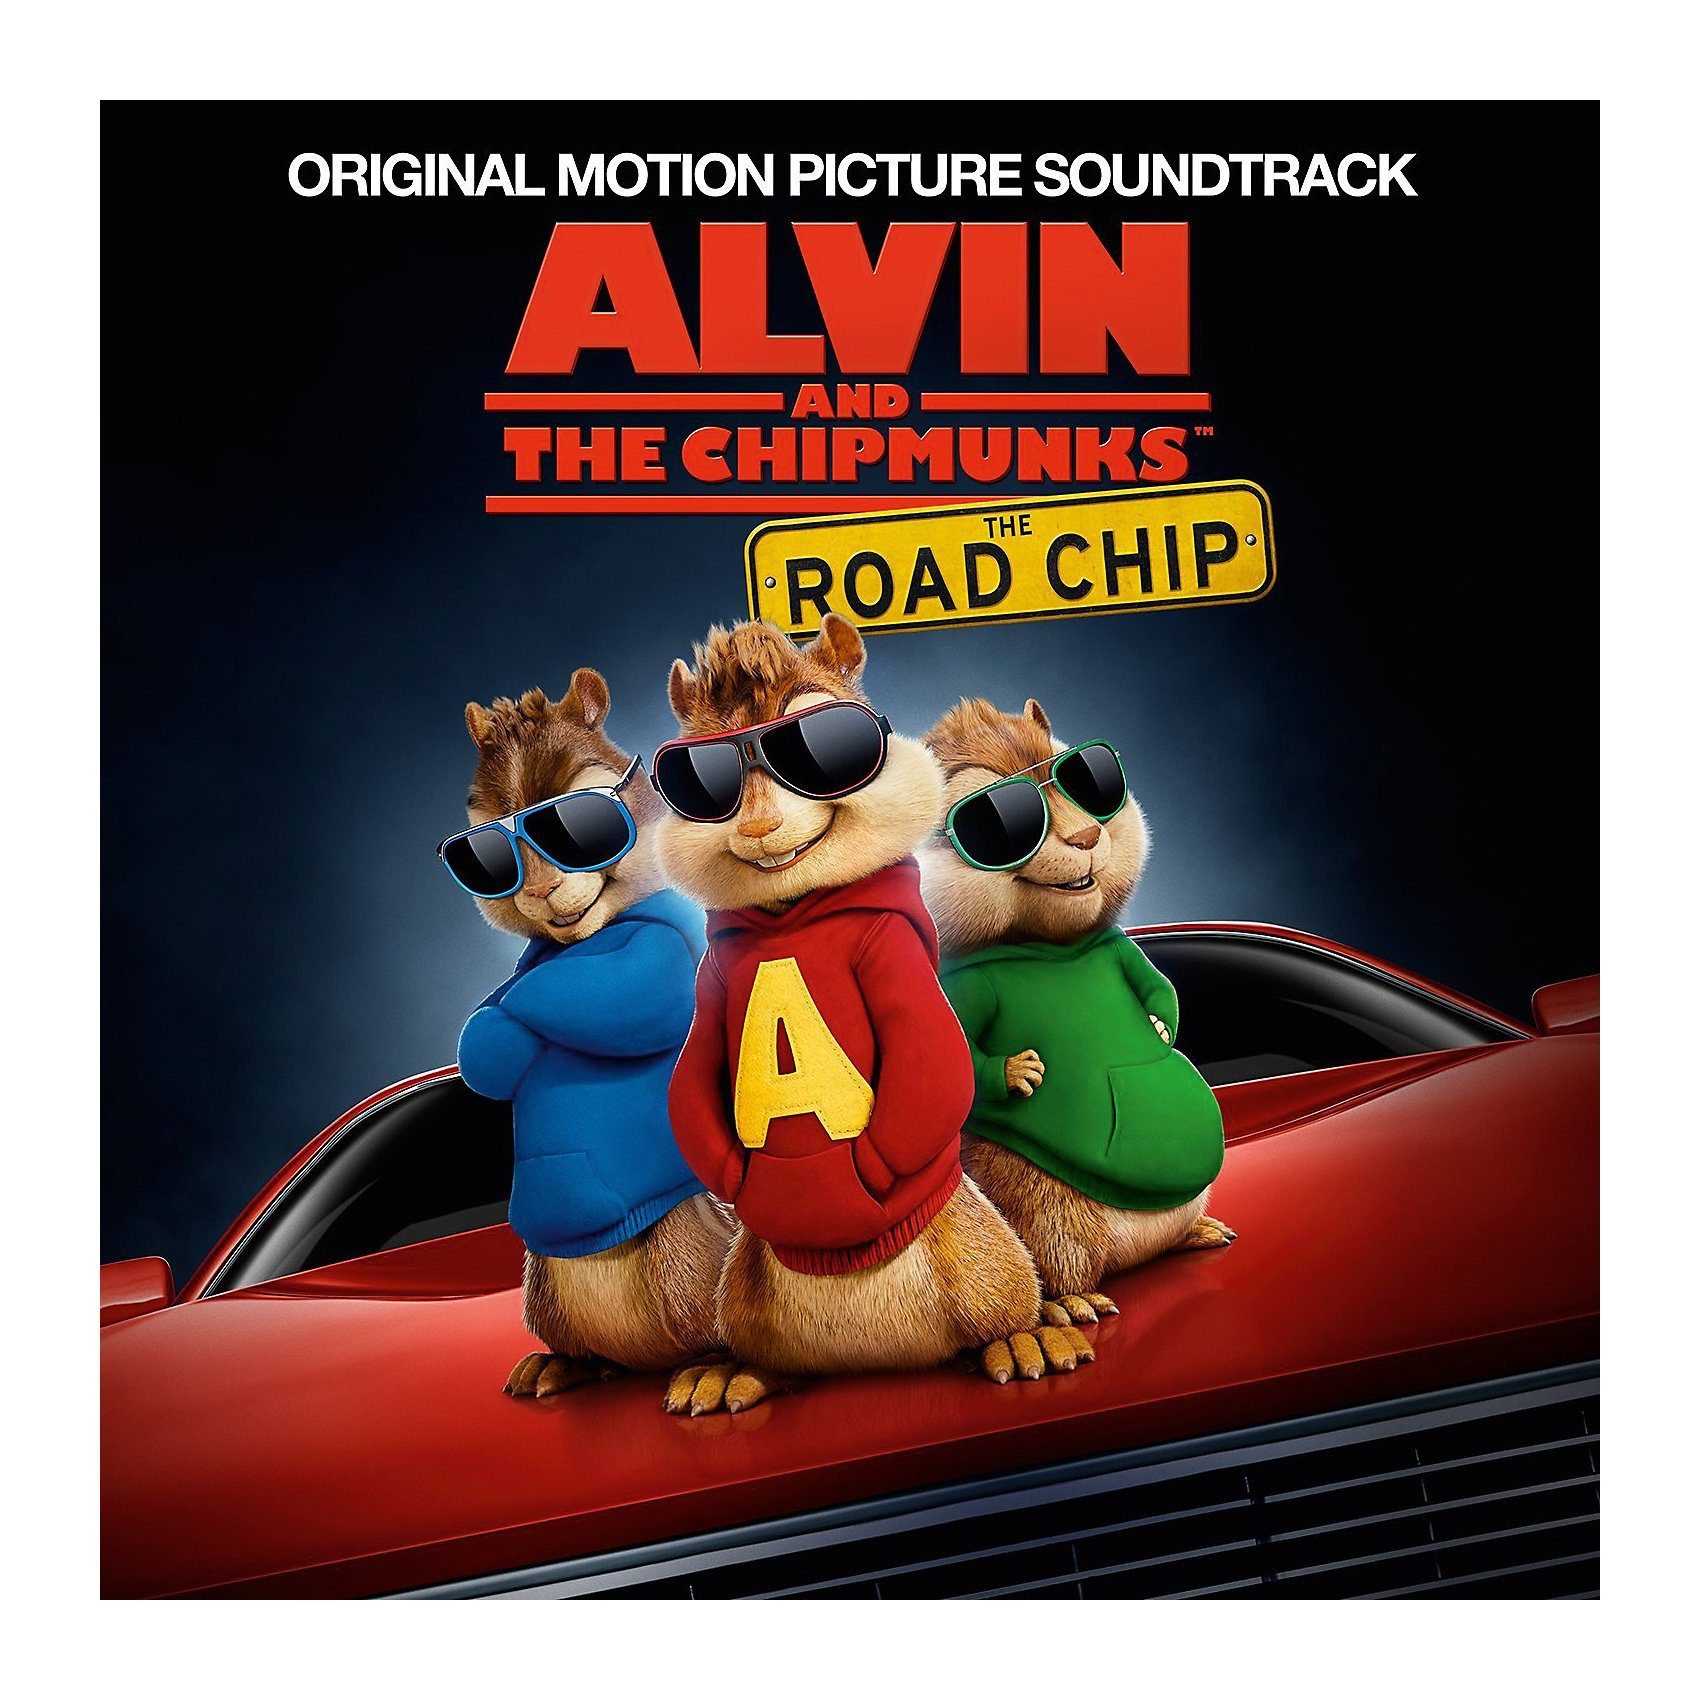 Universal CD Alvin And The Chipmunks: The Road Chip (Soundtrack)